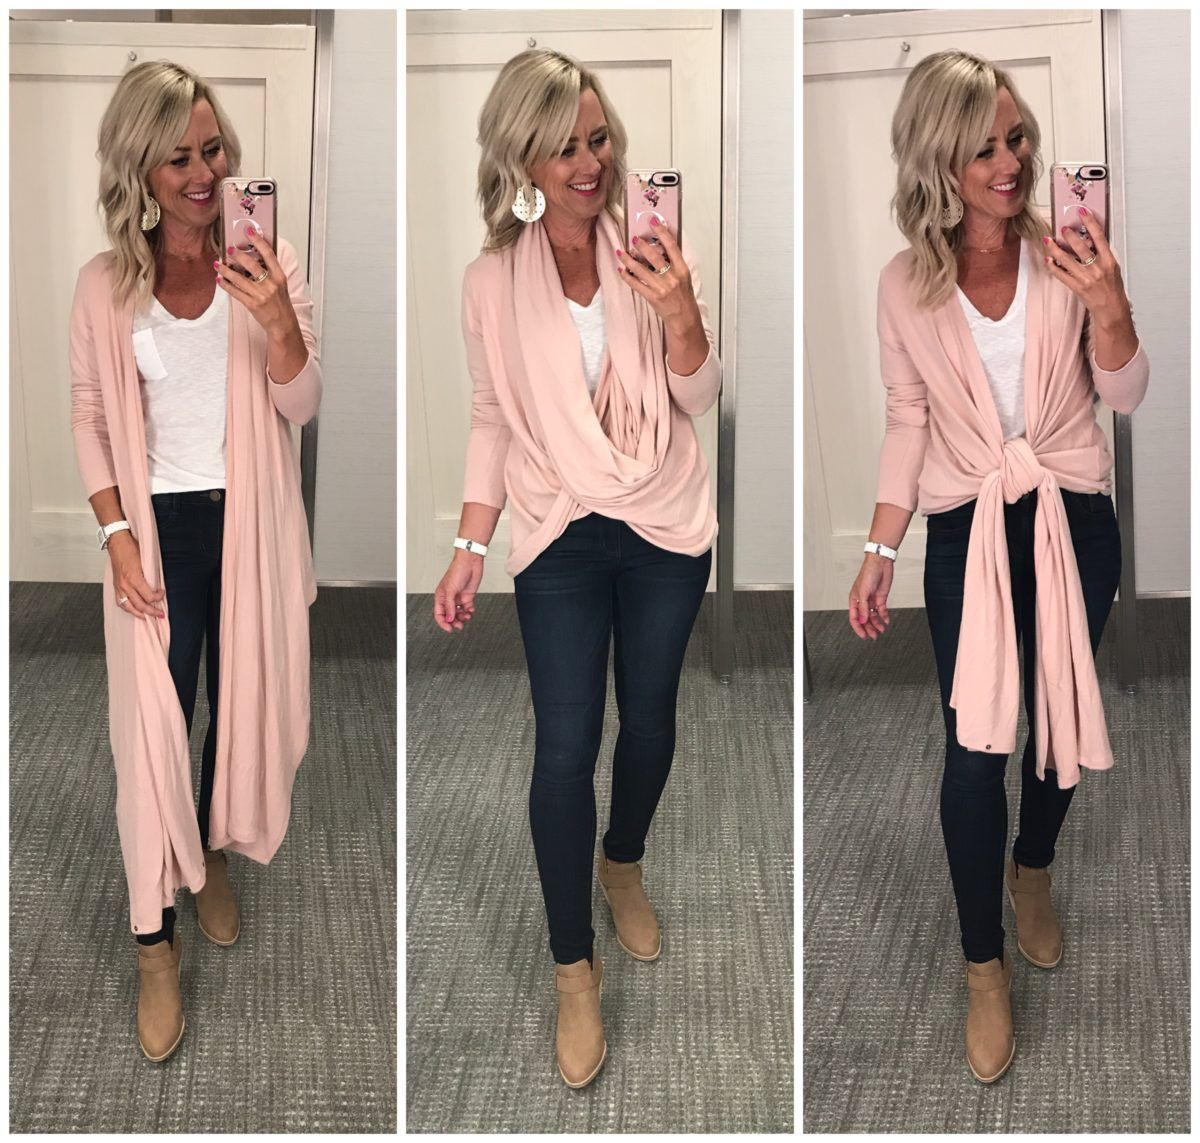 364ba5d6031b Dressing Room Diaries - Nordstrom Anniversary Sale Style! Follow me on my  fashion adventures! I'll bring you inside the dressing room as I shop for  the ...